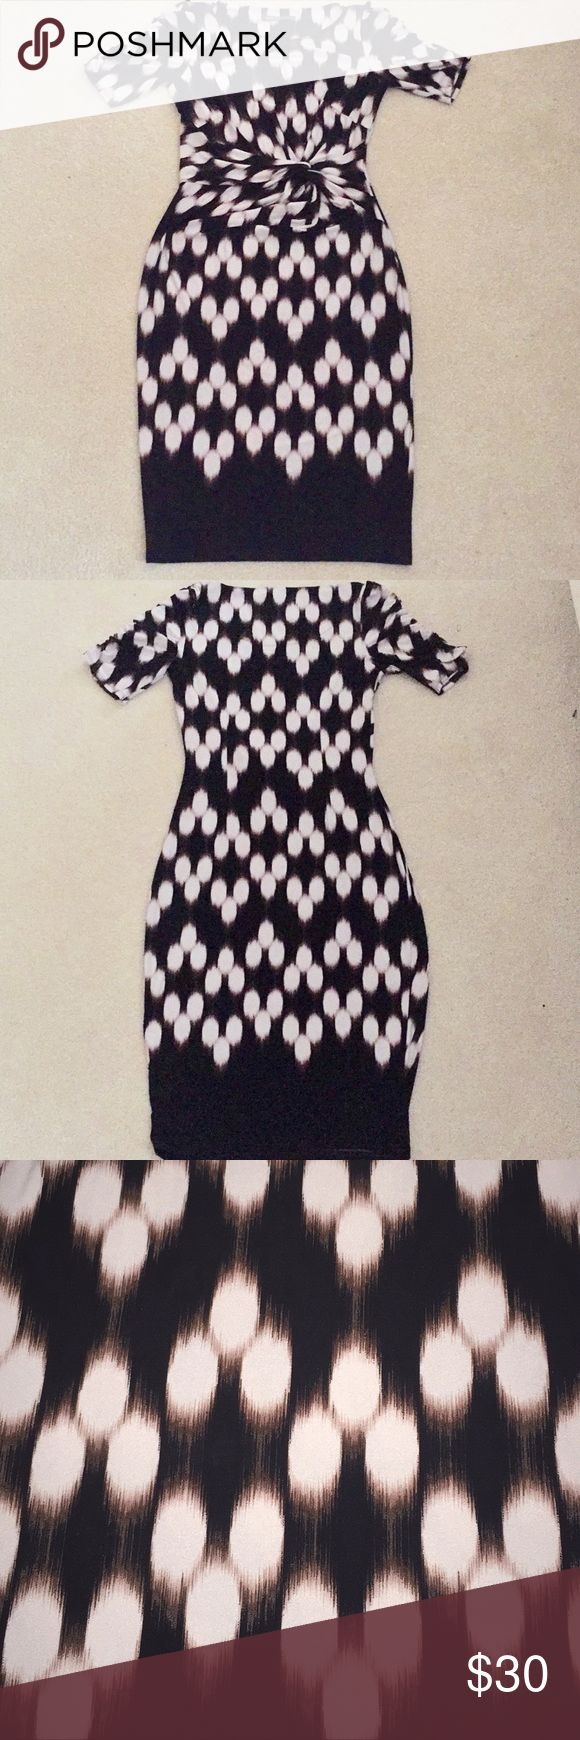 Half Sleeve Knee Length Bodycon Dress M&S Collection UK SIZE 8 US SIZE 4 Marks & Spencer Dresses